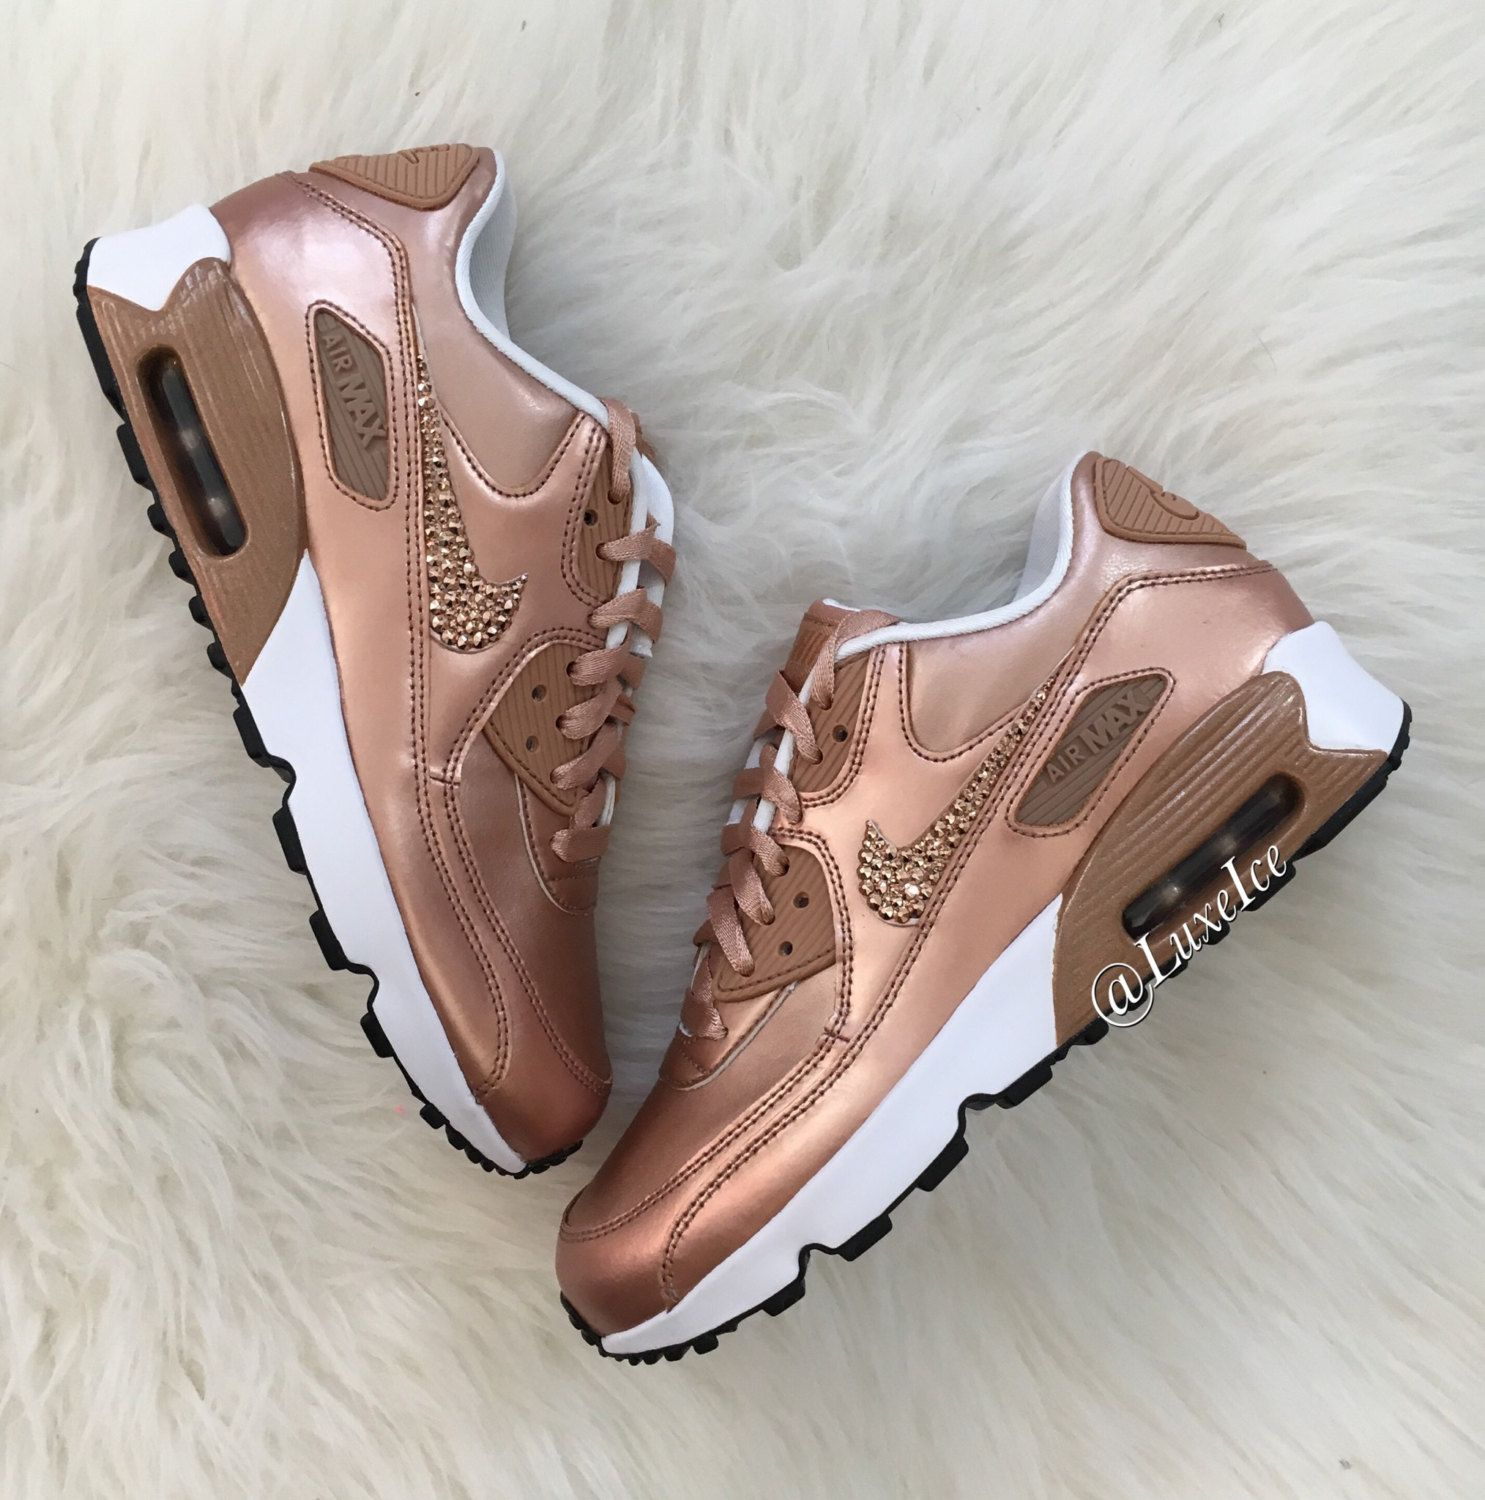 nike air max 90 se leather shoes made with swarovski. Black Bedroom Furniture Sets. Home Design Ideas